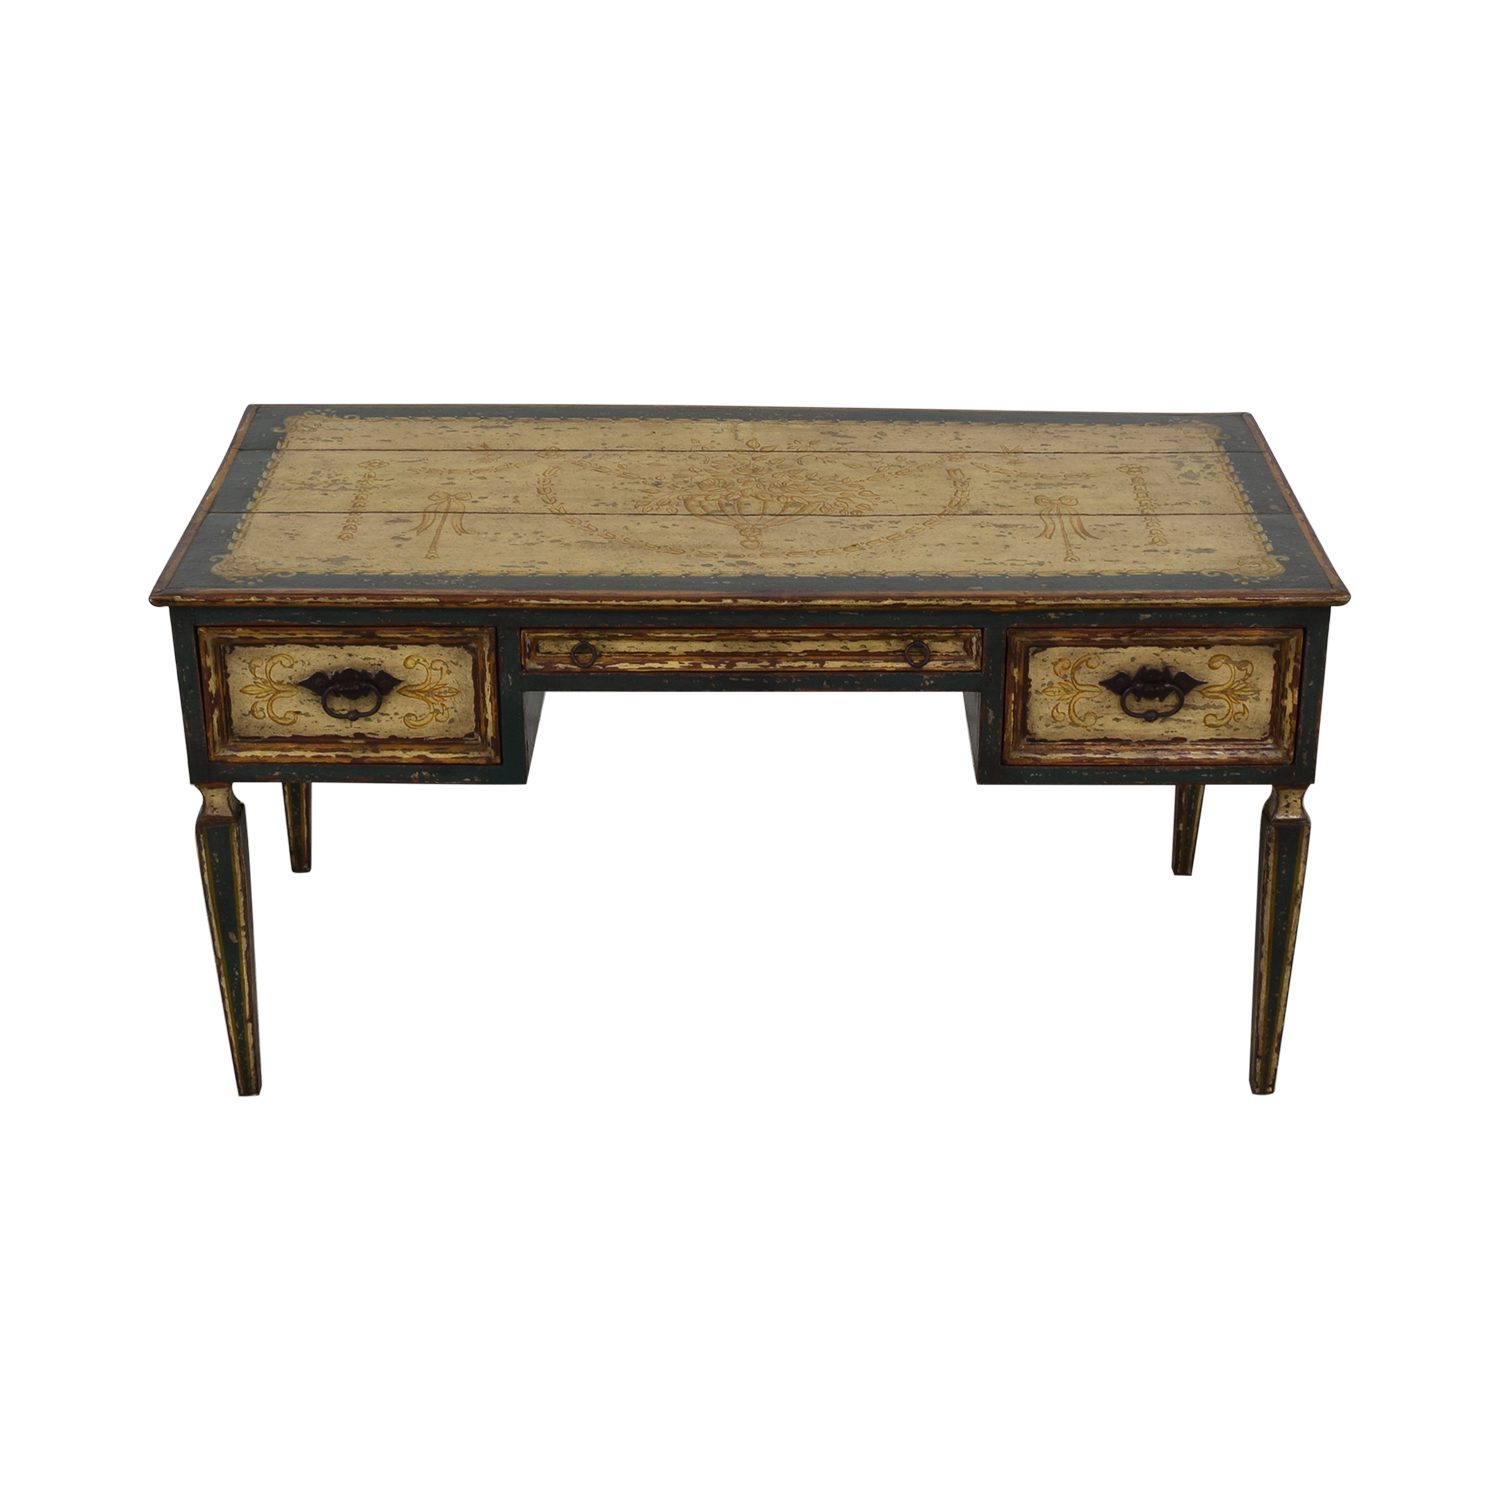 Equestrian Hand Painted Reclaimed Wood Desk